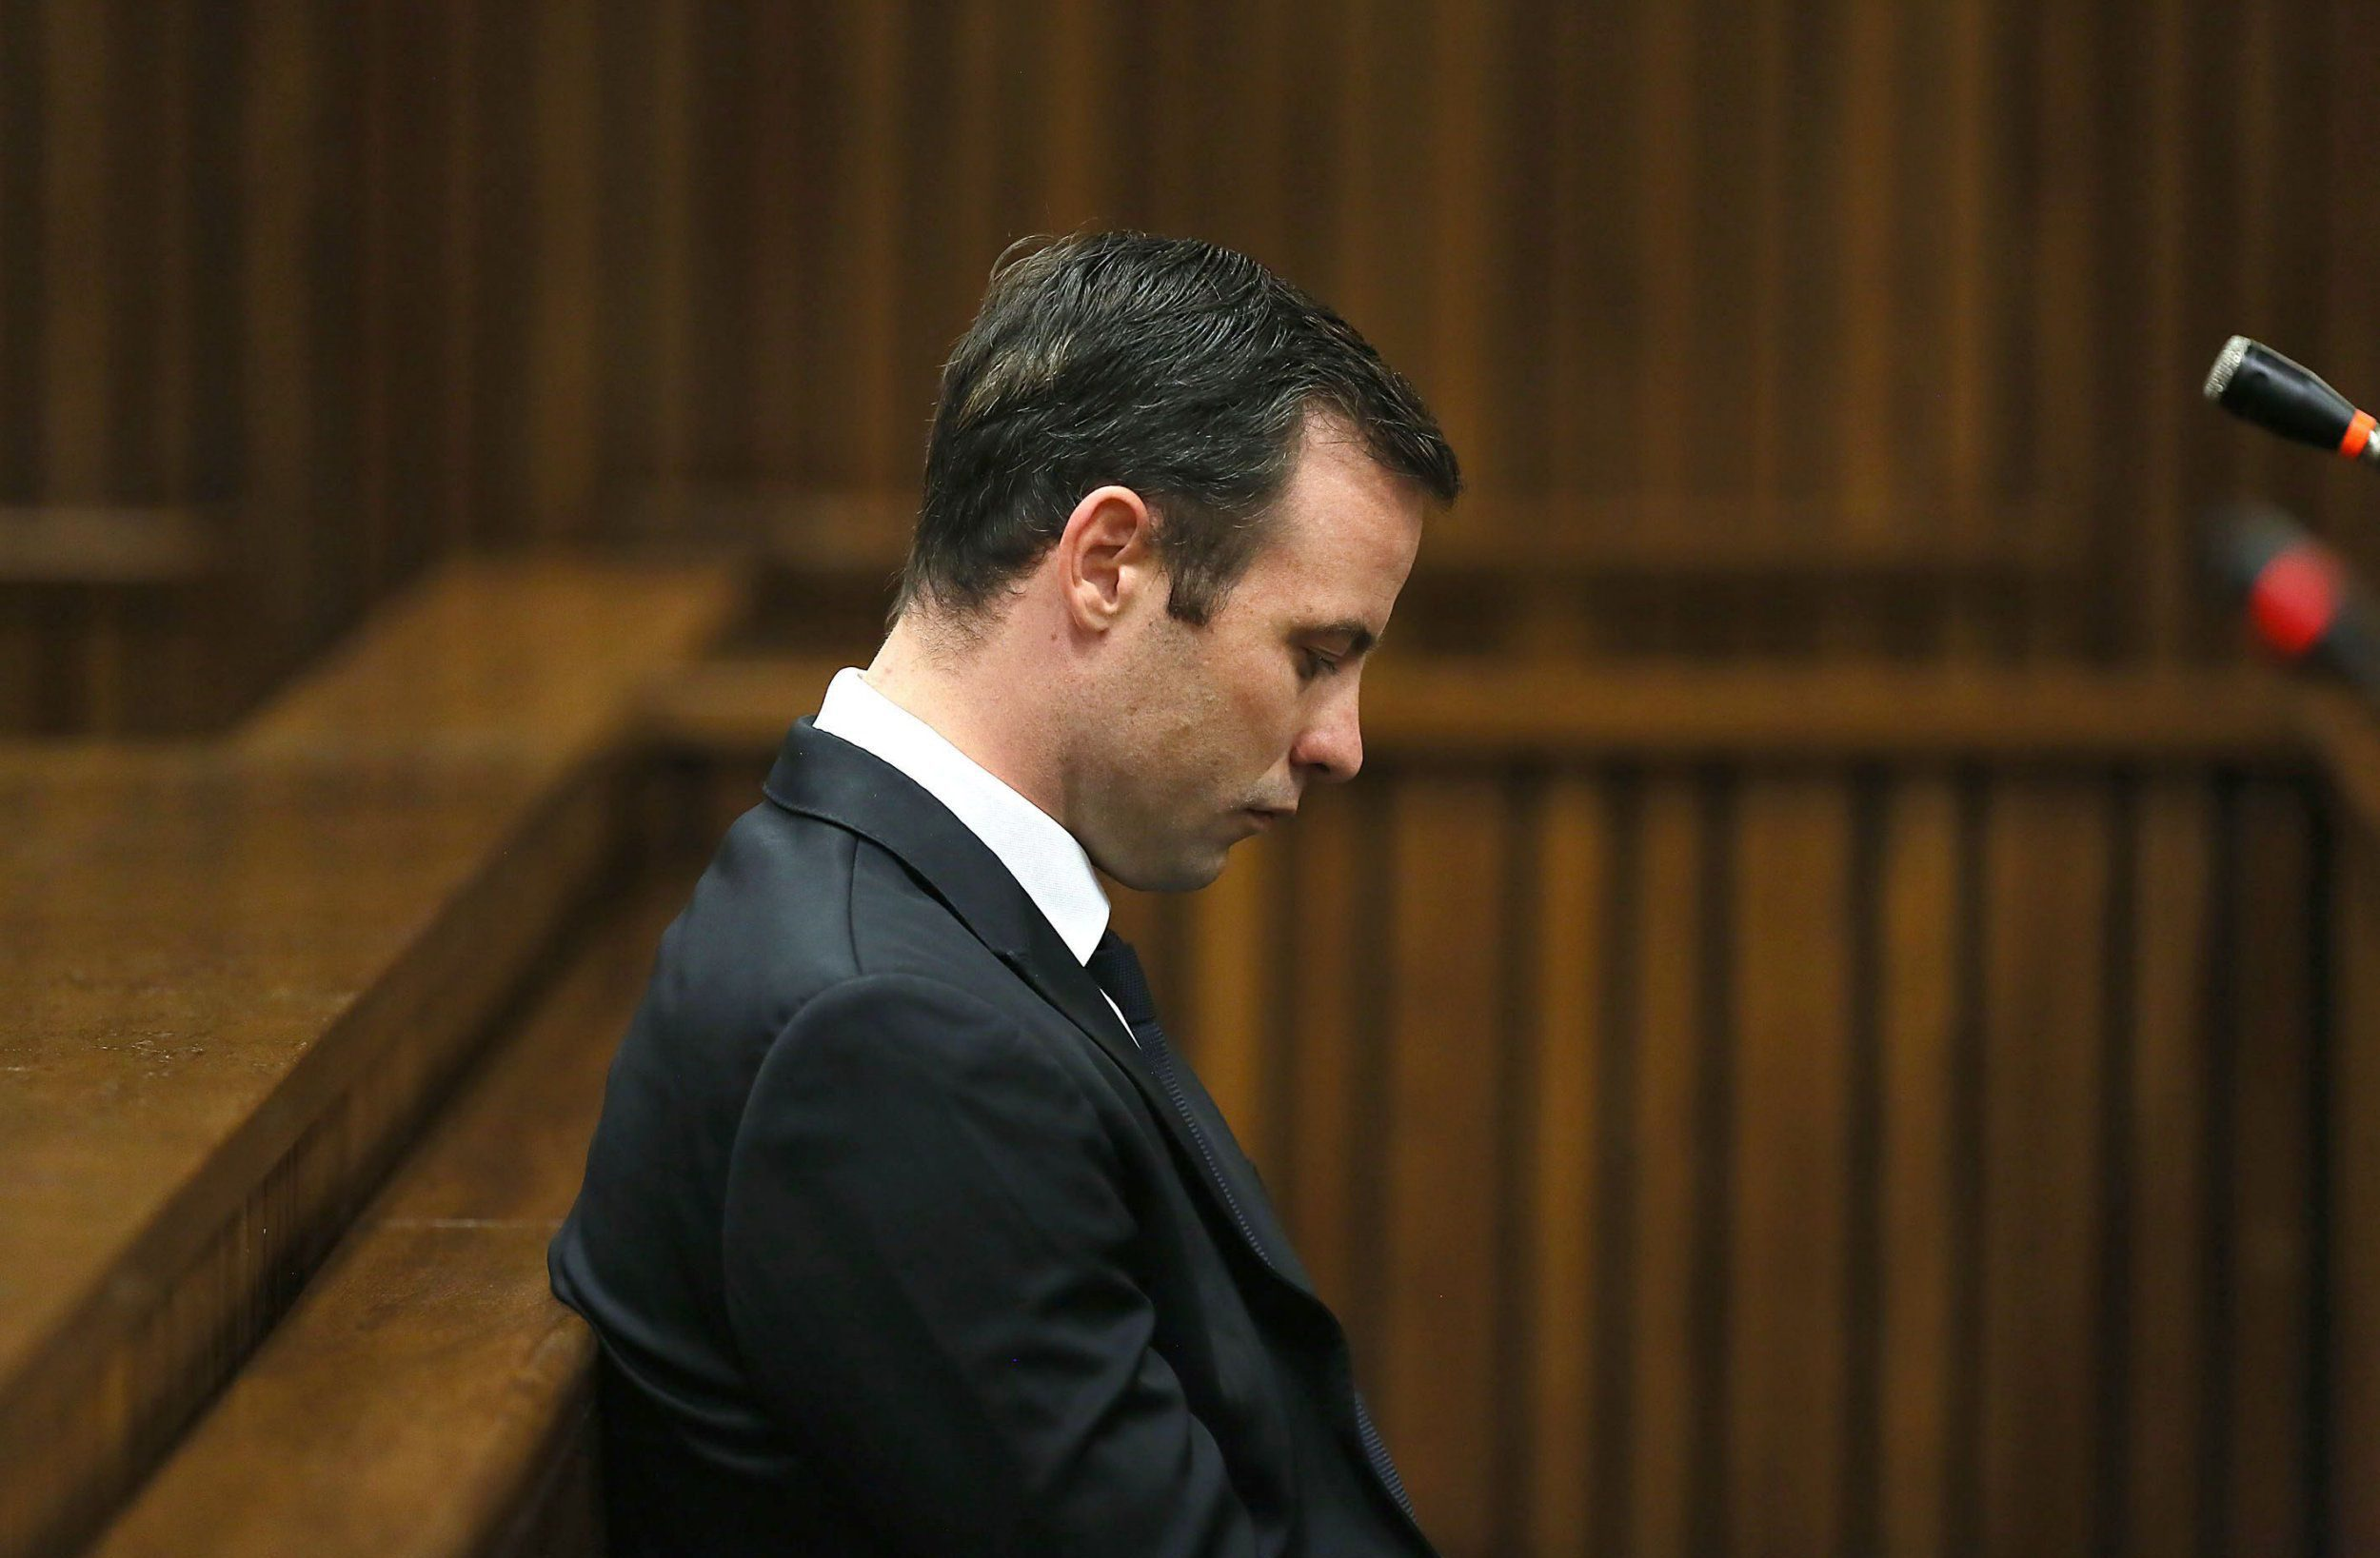 Damning new evidence shows Pistorius may have beaten Reeva before shooting her